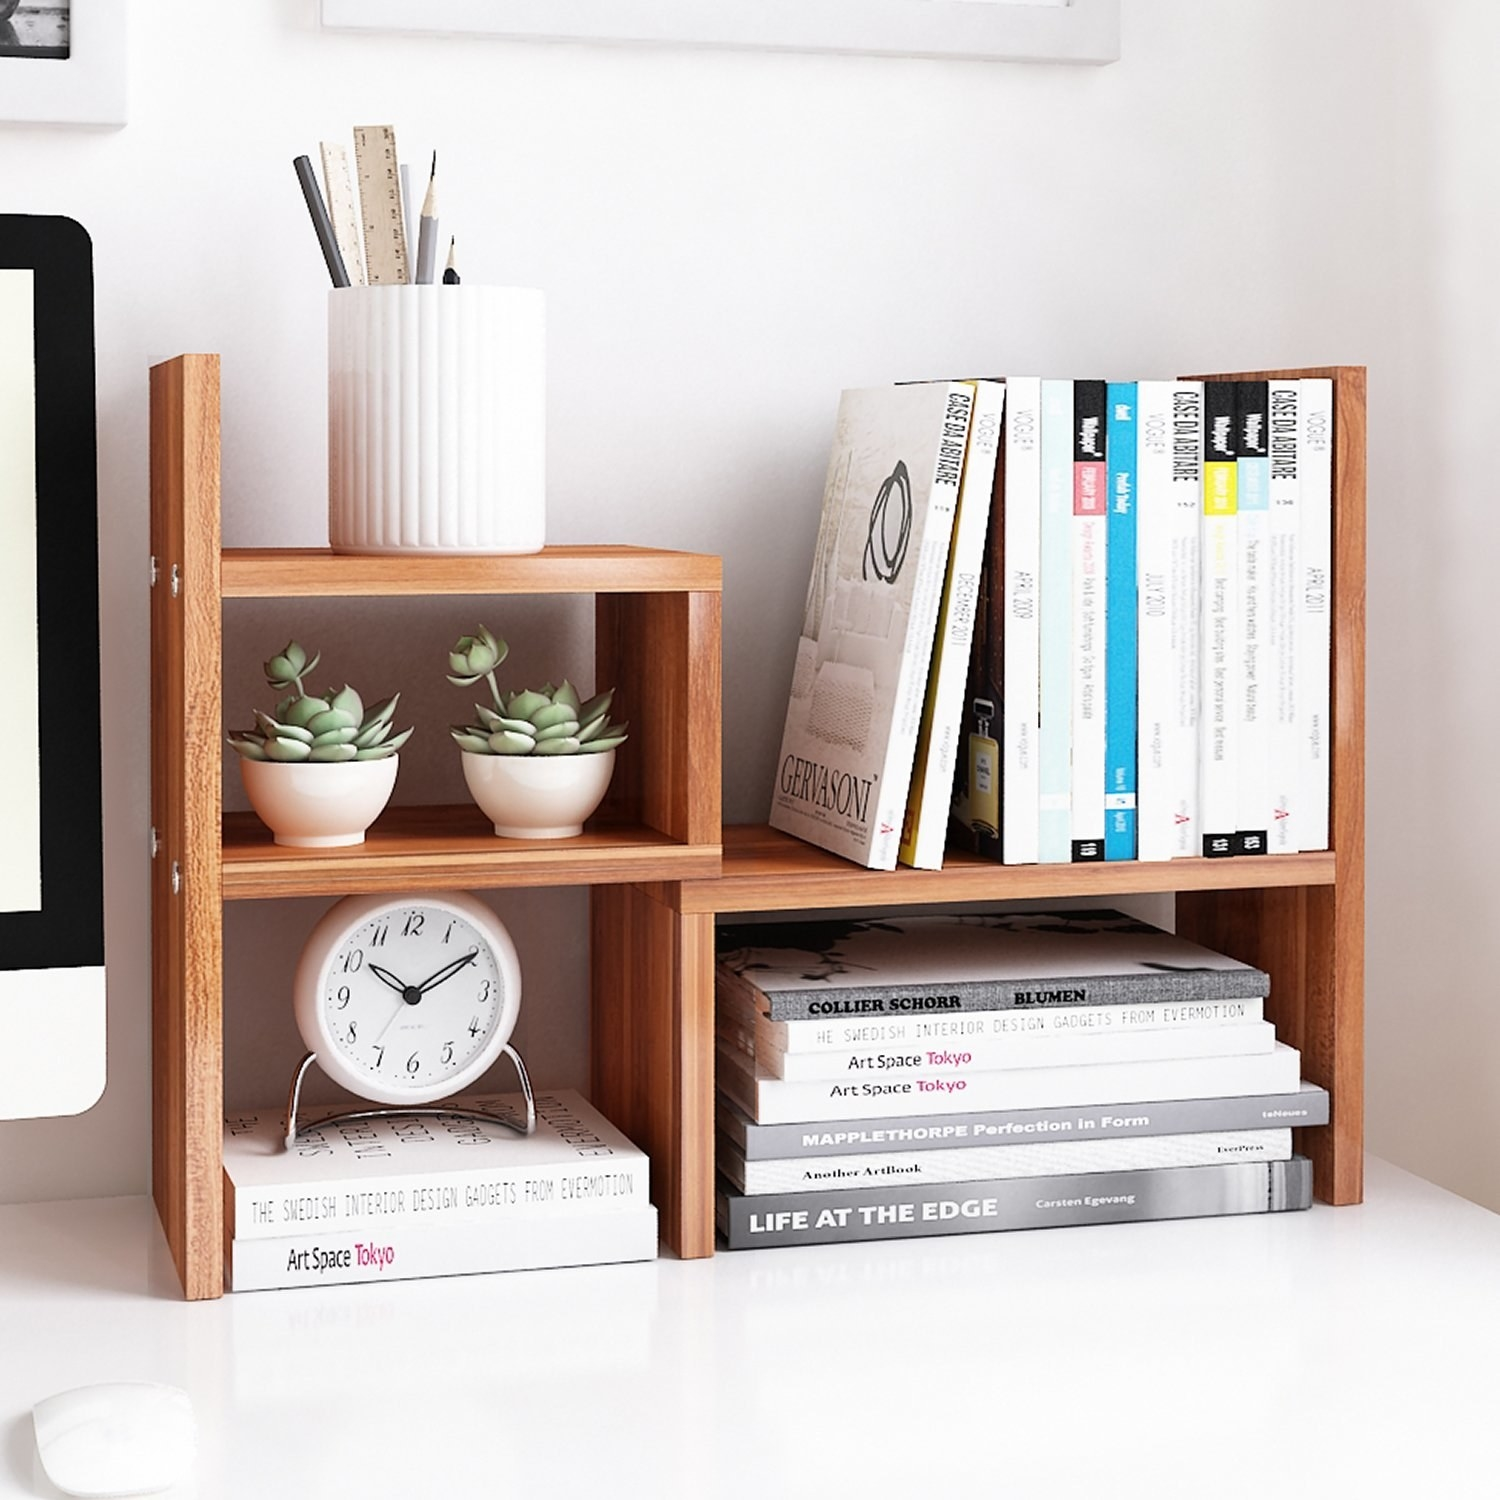 wooden desk organize with shelf compartments on a desk surface